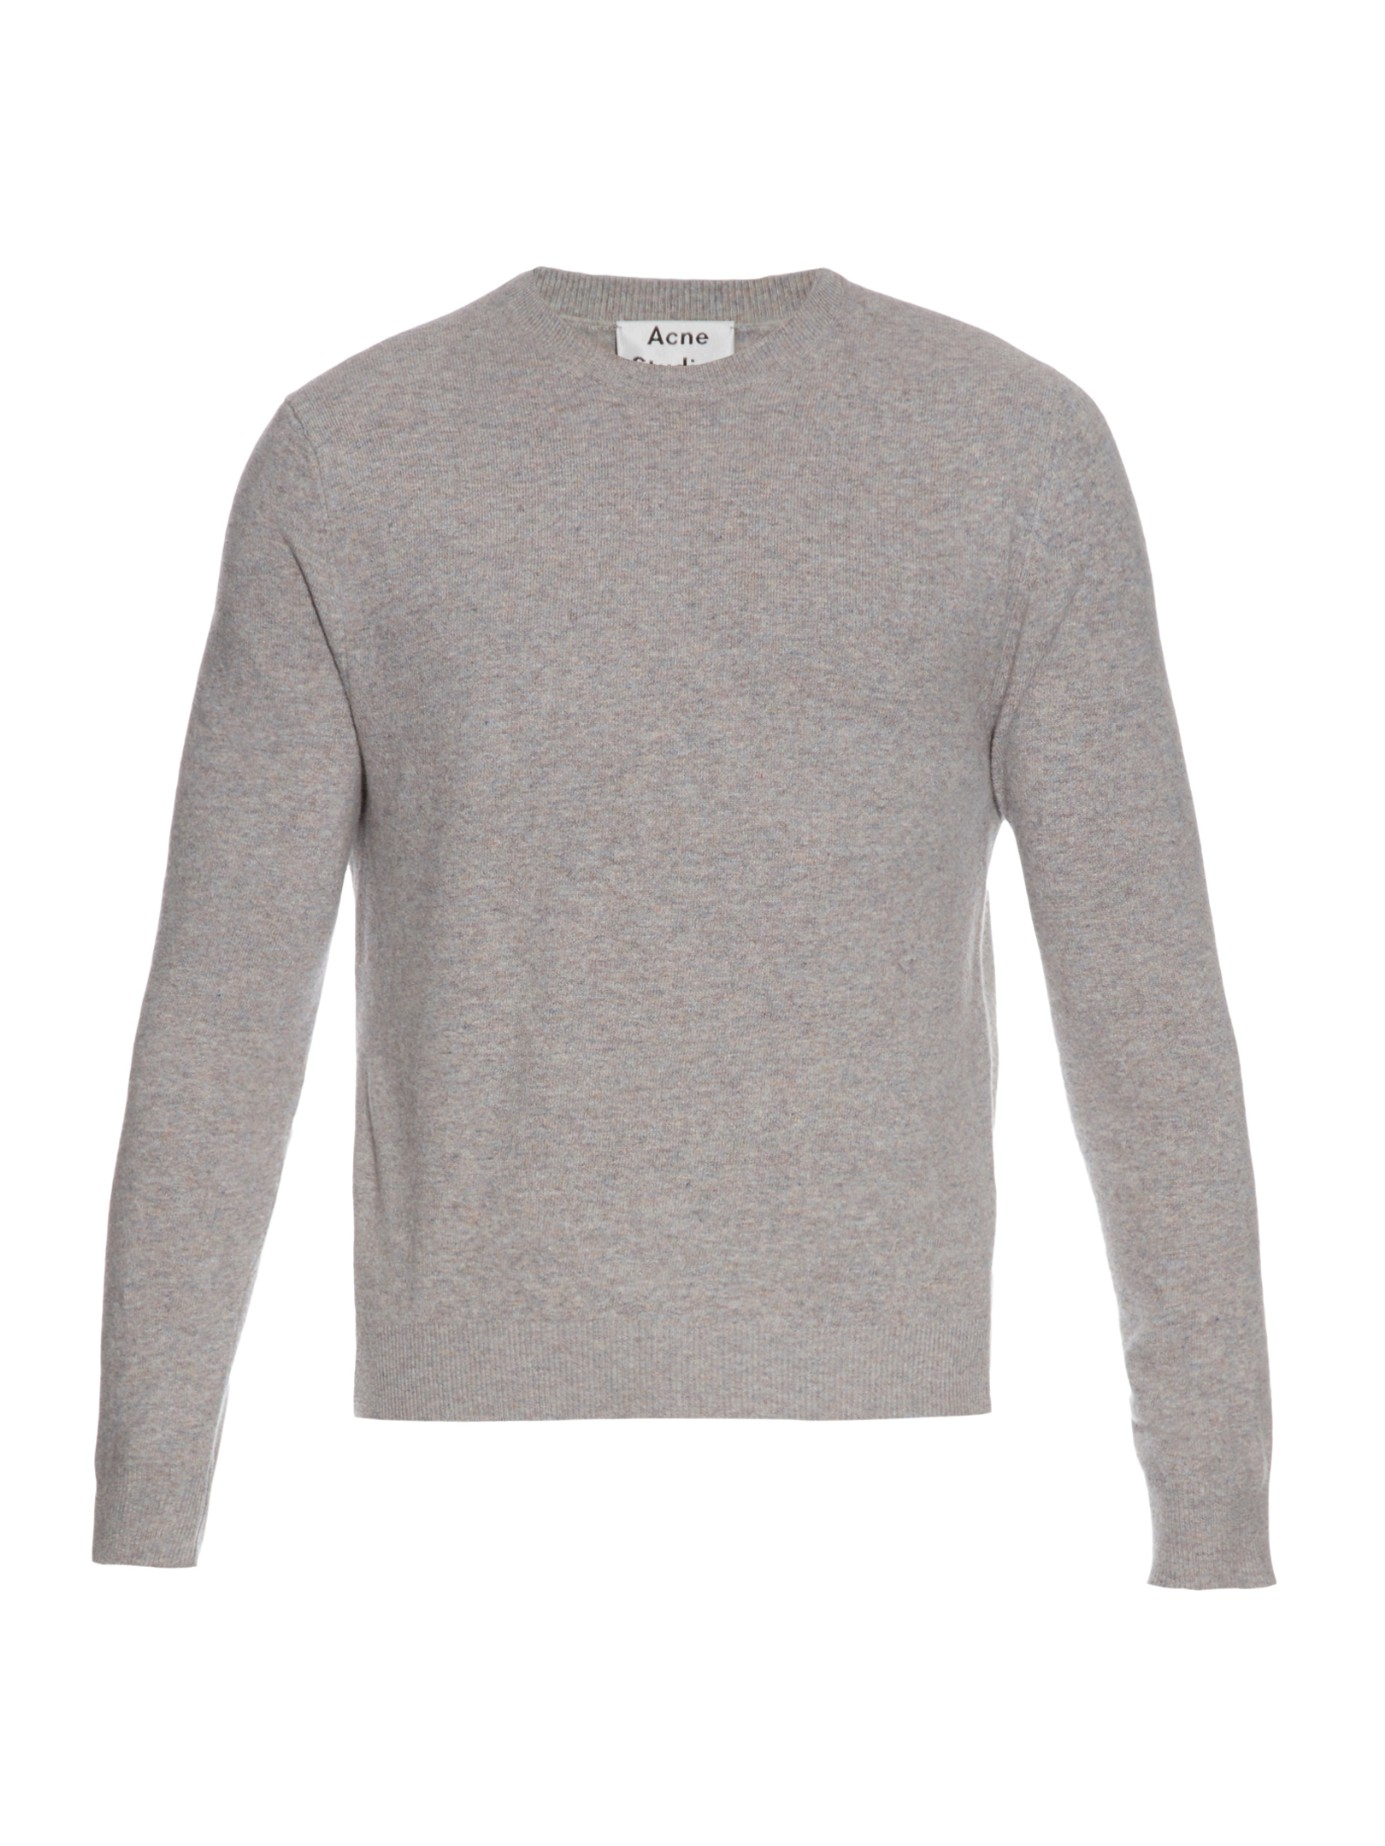 Acne Studios Chet Flecked Wool-knit Sweater in Gray for Men - Lyst 78e33576d1a